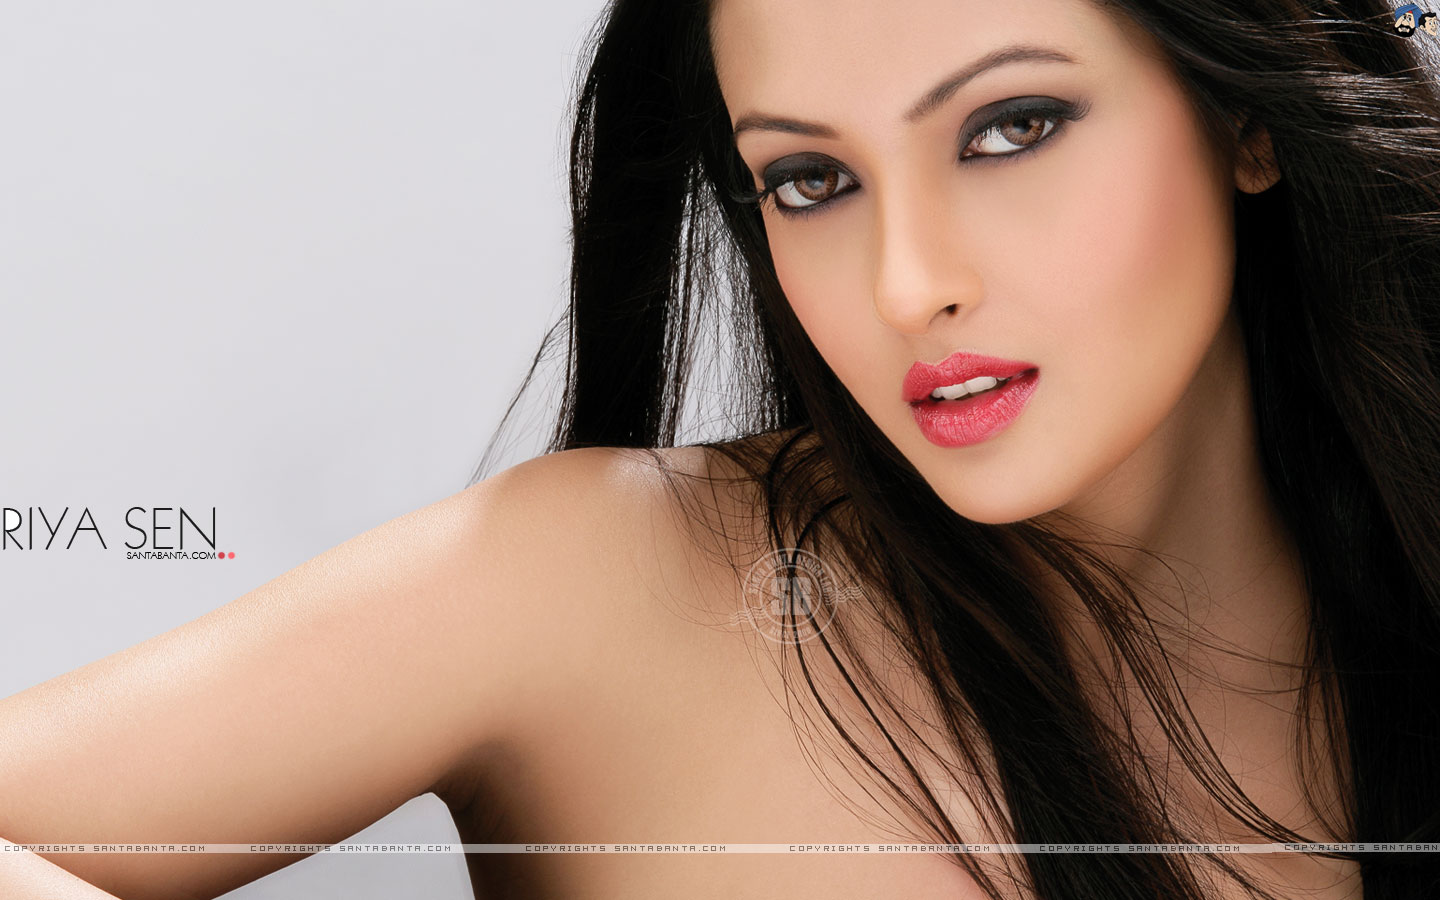 HD Wallpaper of Riya Sen | HD Wallpapers